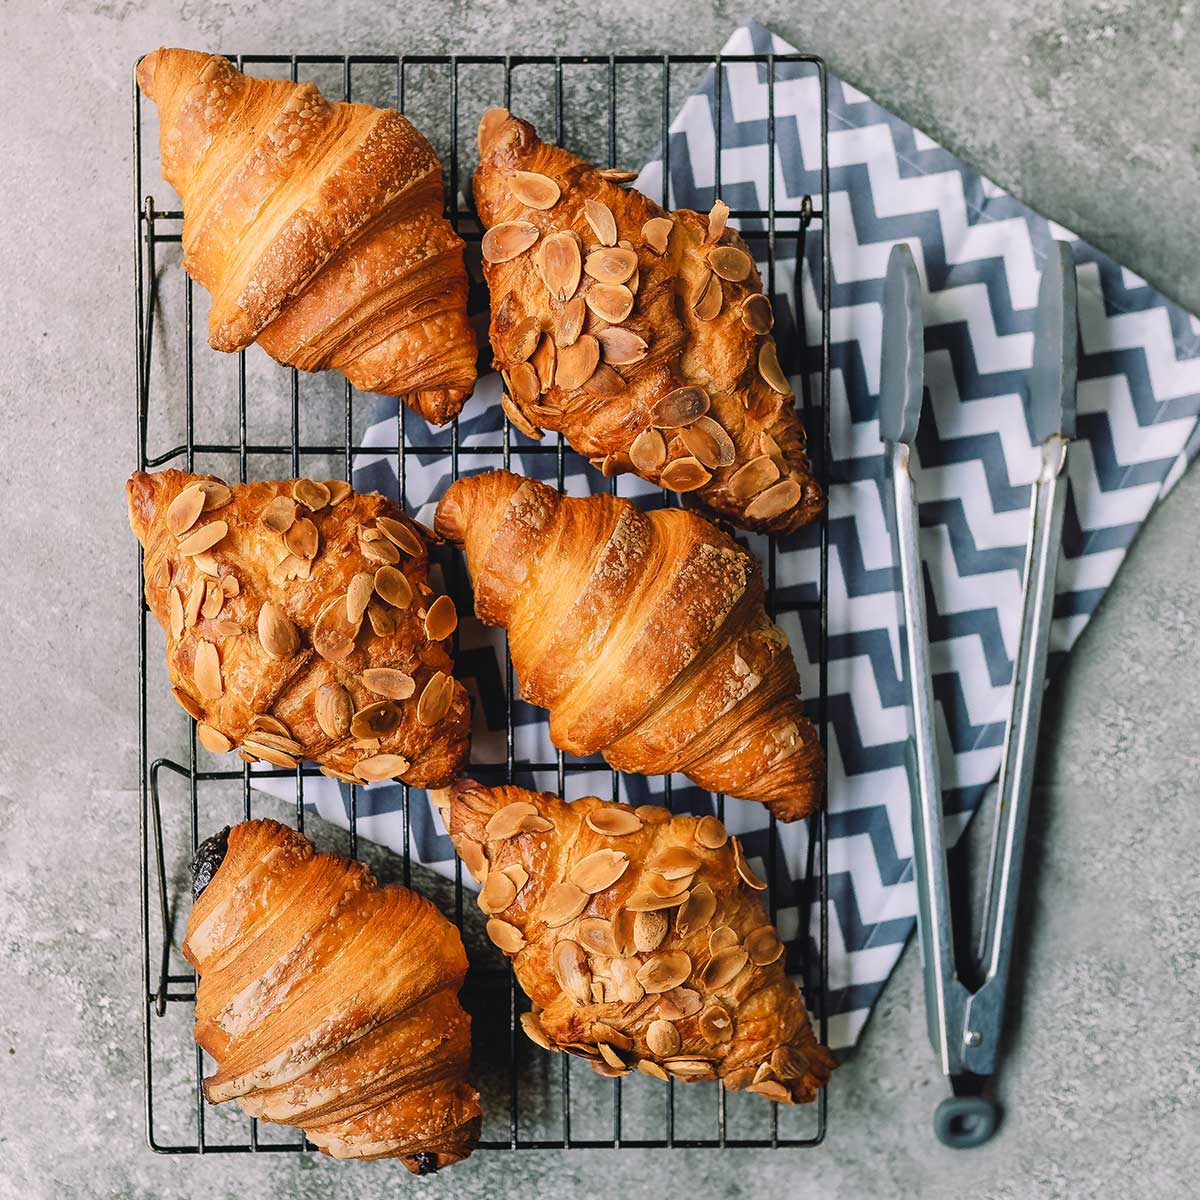 How to proof croissant dough